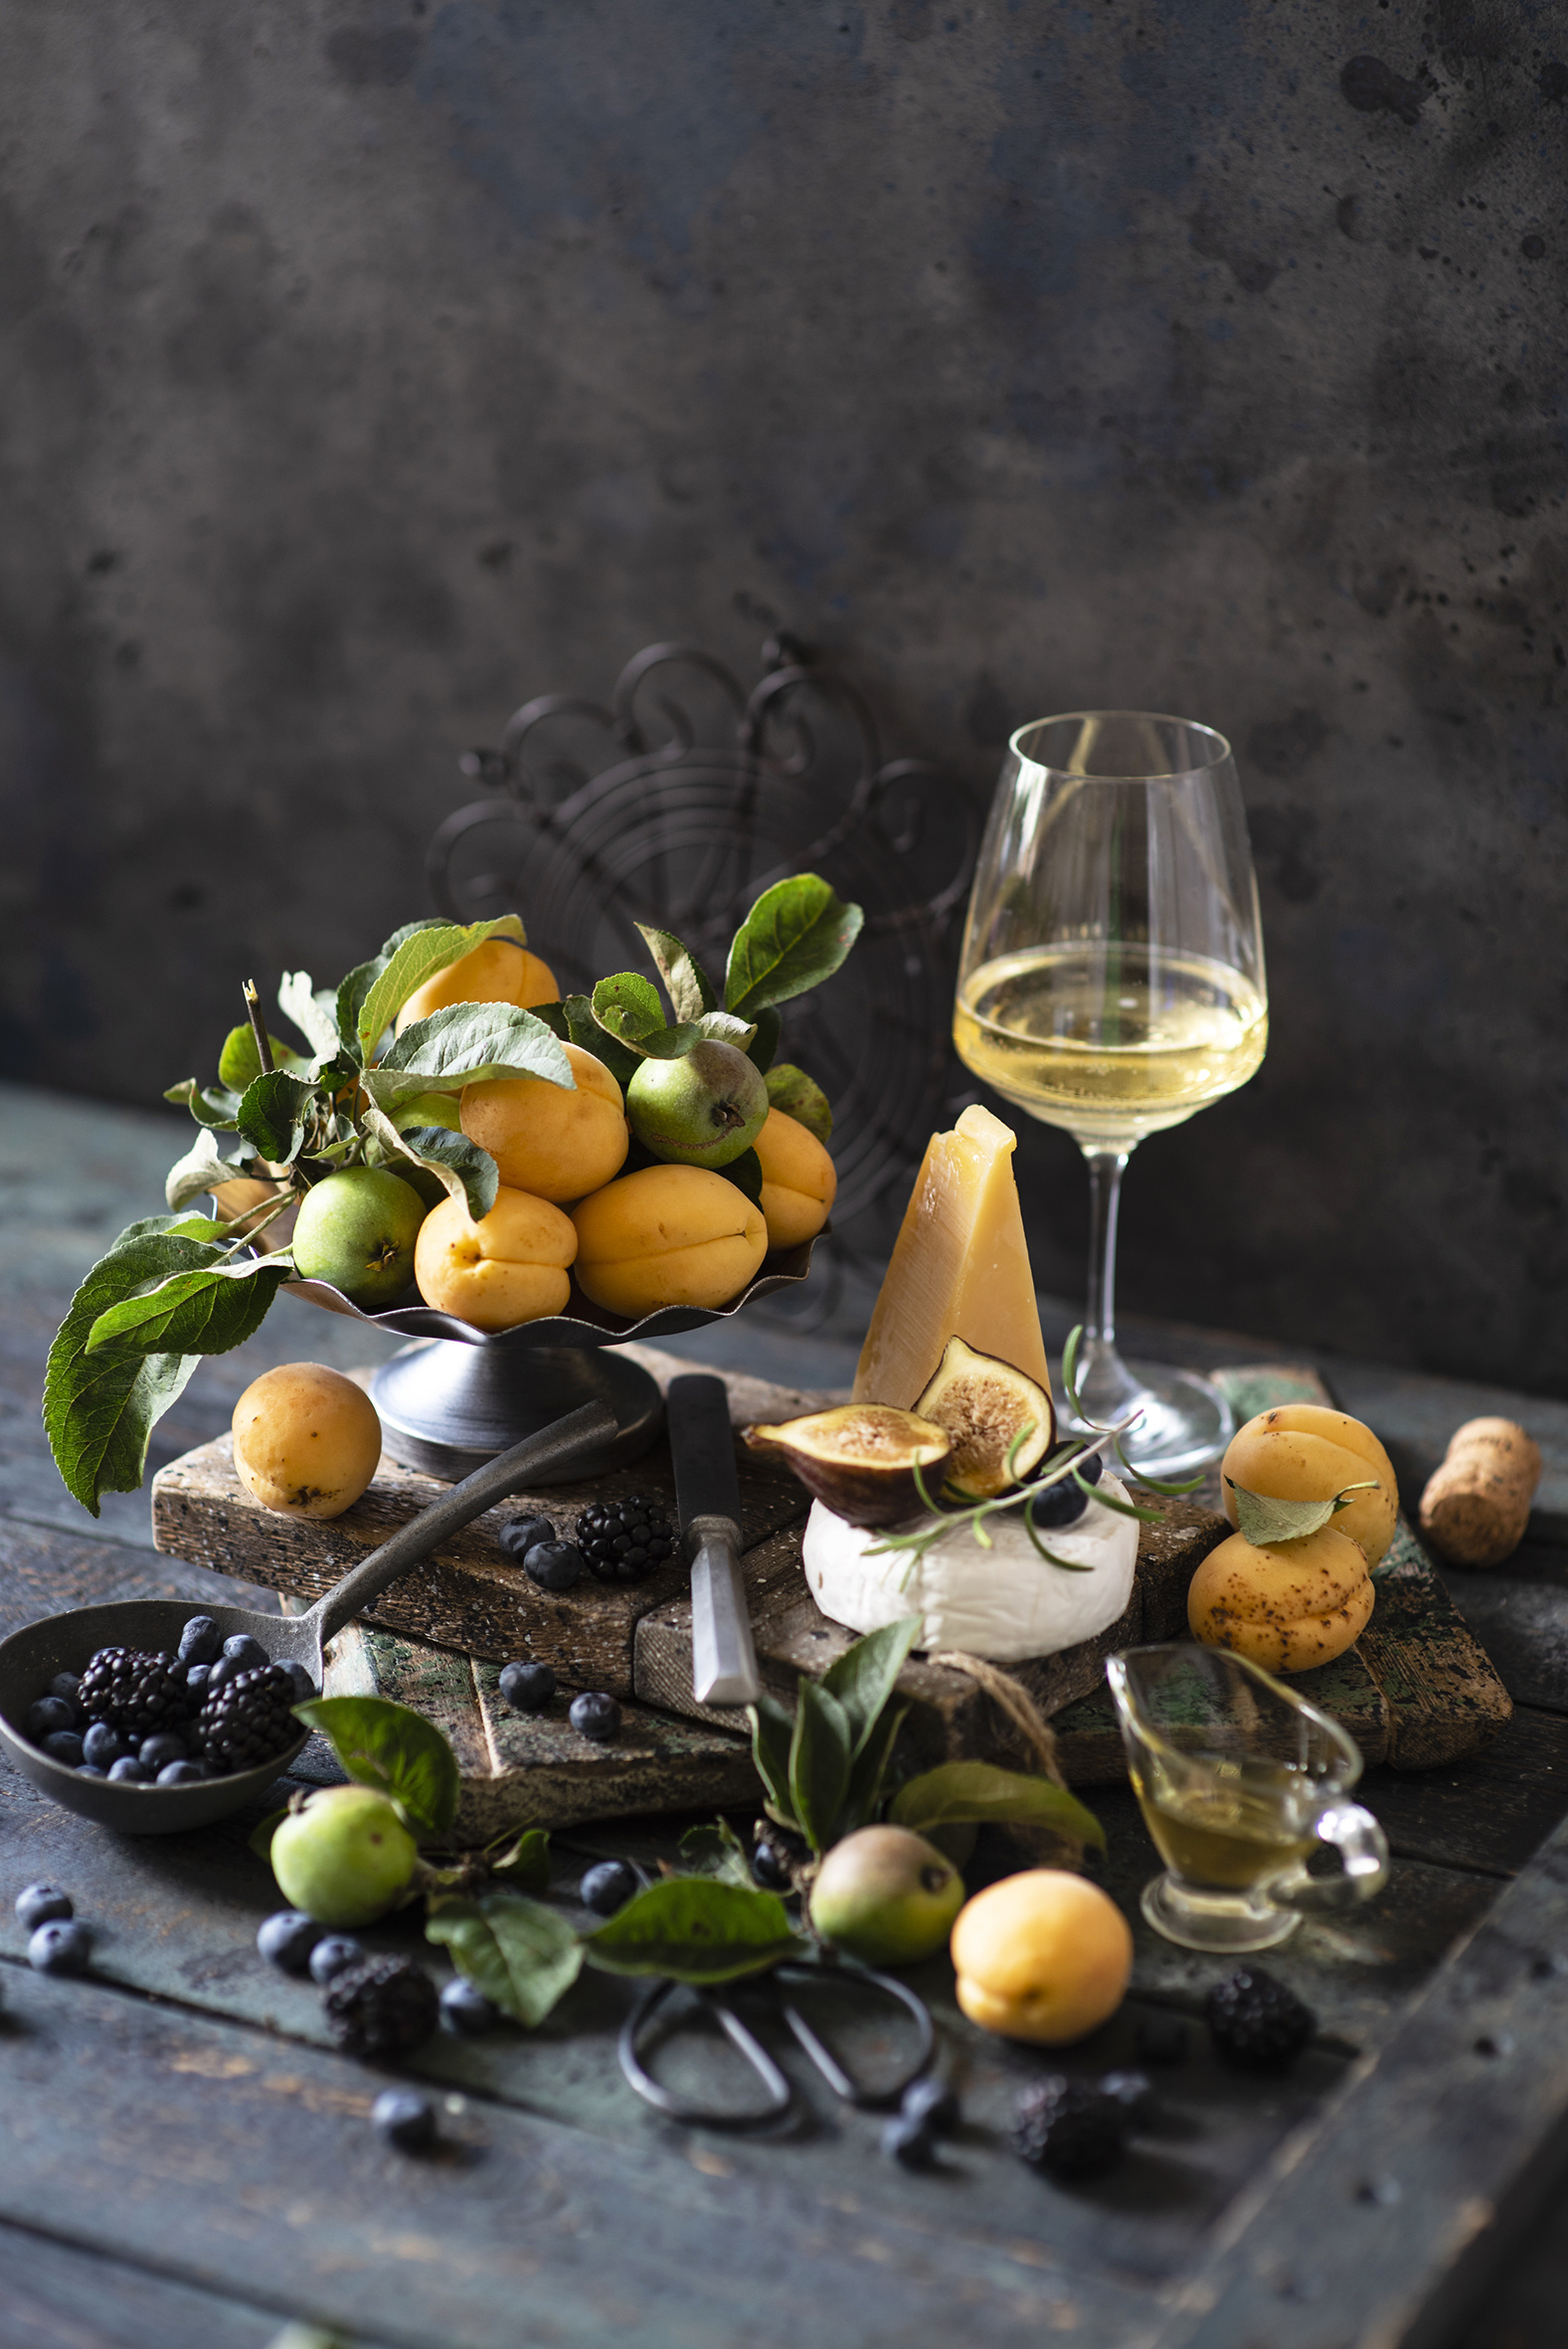 Images Wine Apricot ficus carica Cheese Apples Blackberry Blueberries Food Stemware boards  for Mobile phone figs Common fig Wood planks